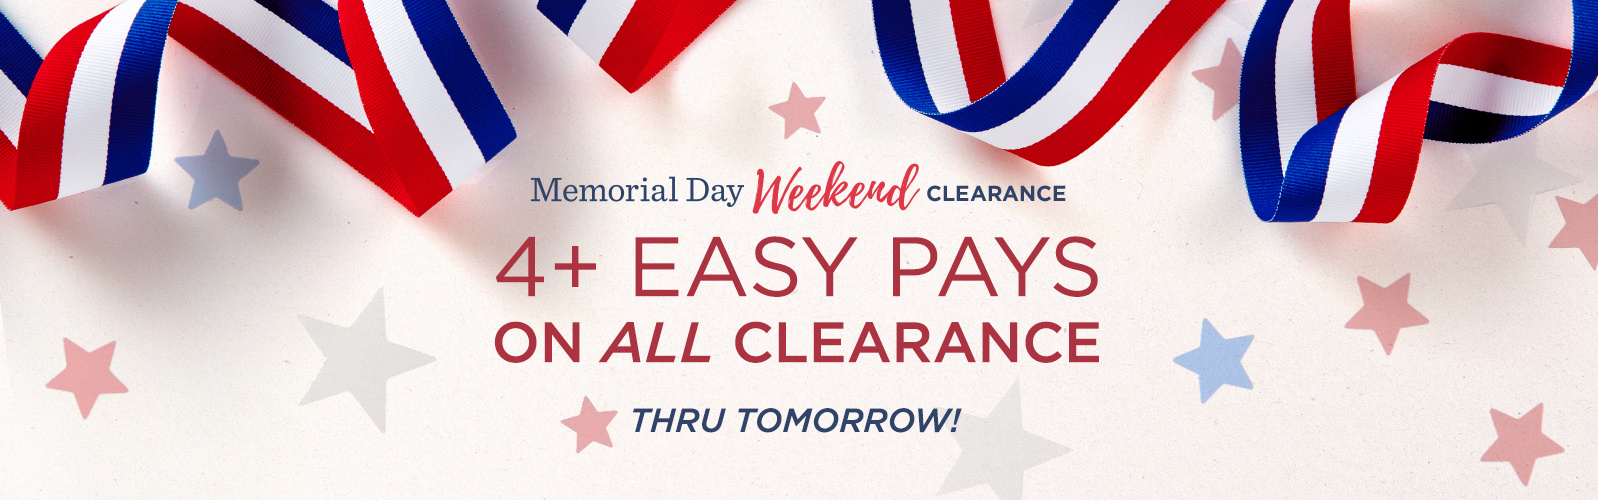 Memorial Day Weekend Clearance — 4+ Easy Pays on ALL Clearance Thru Tomorrow!